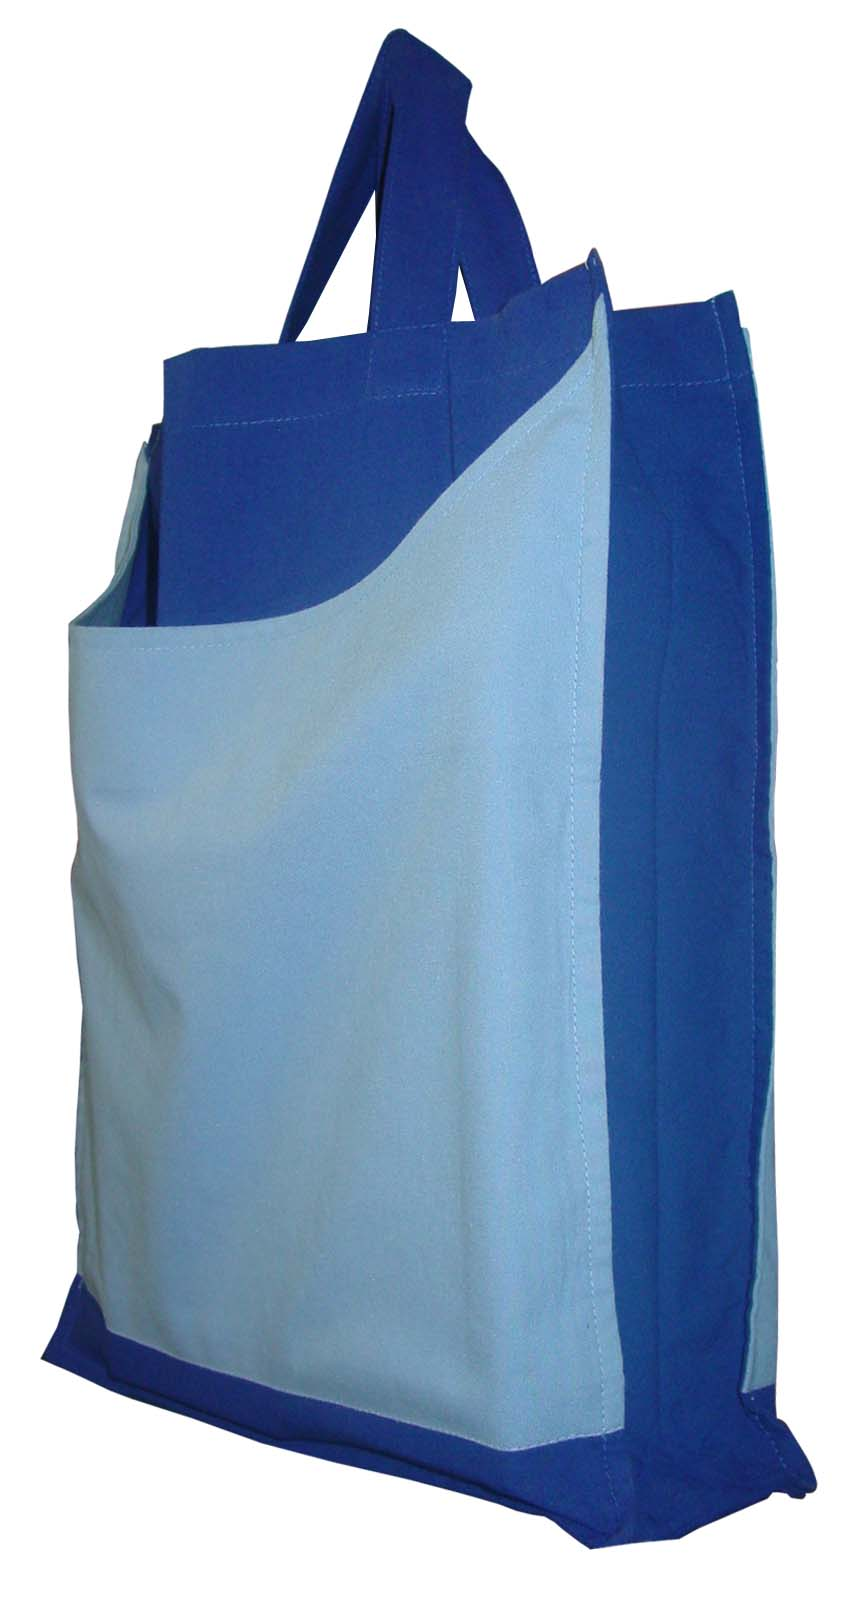 Tote bags in poplin fabric with contrast